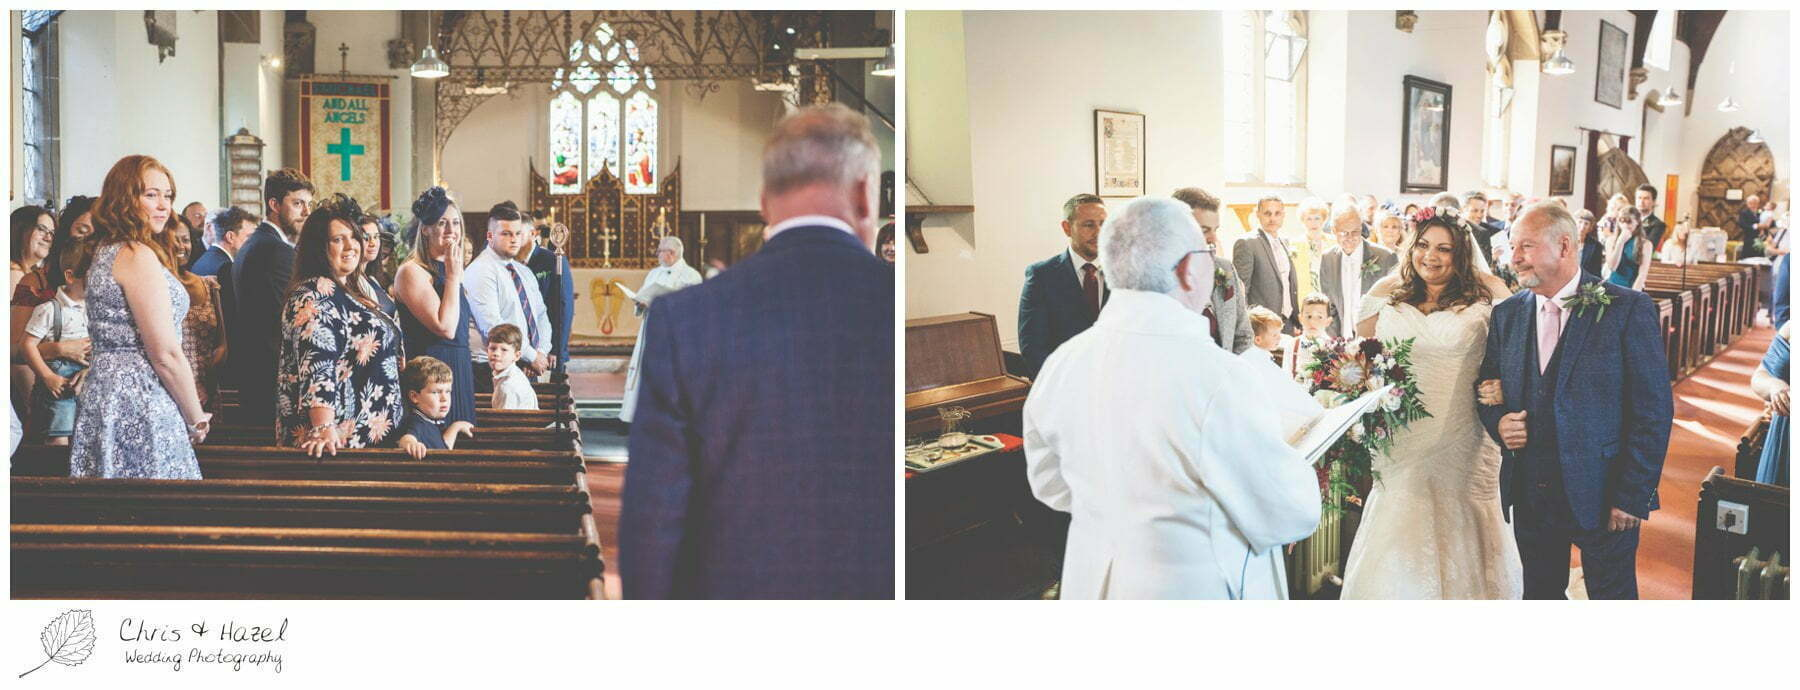 Bride walking down the aisle with father, Hilperton Church, St Michael & All Angels' Church, Wedding Photography, Wiltshire Wedding Photographer Trowbridge, Chris and Hazel Wedding Photography